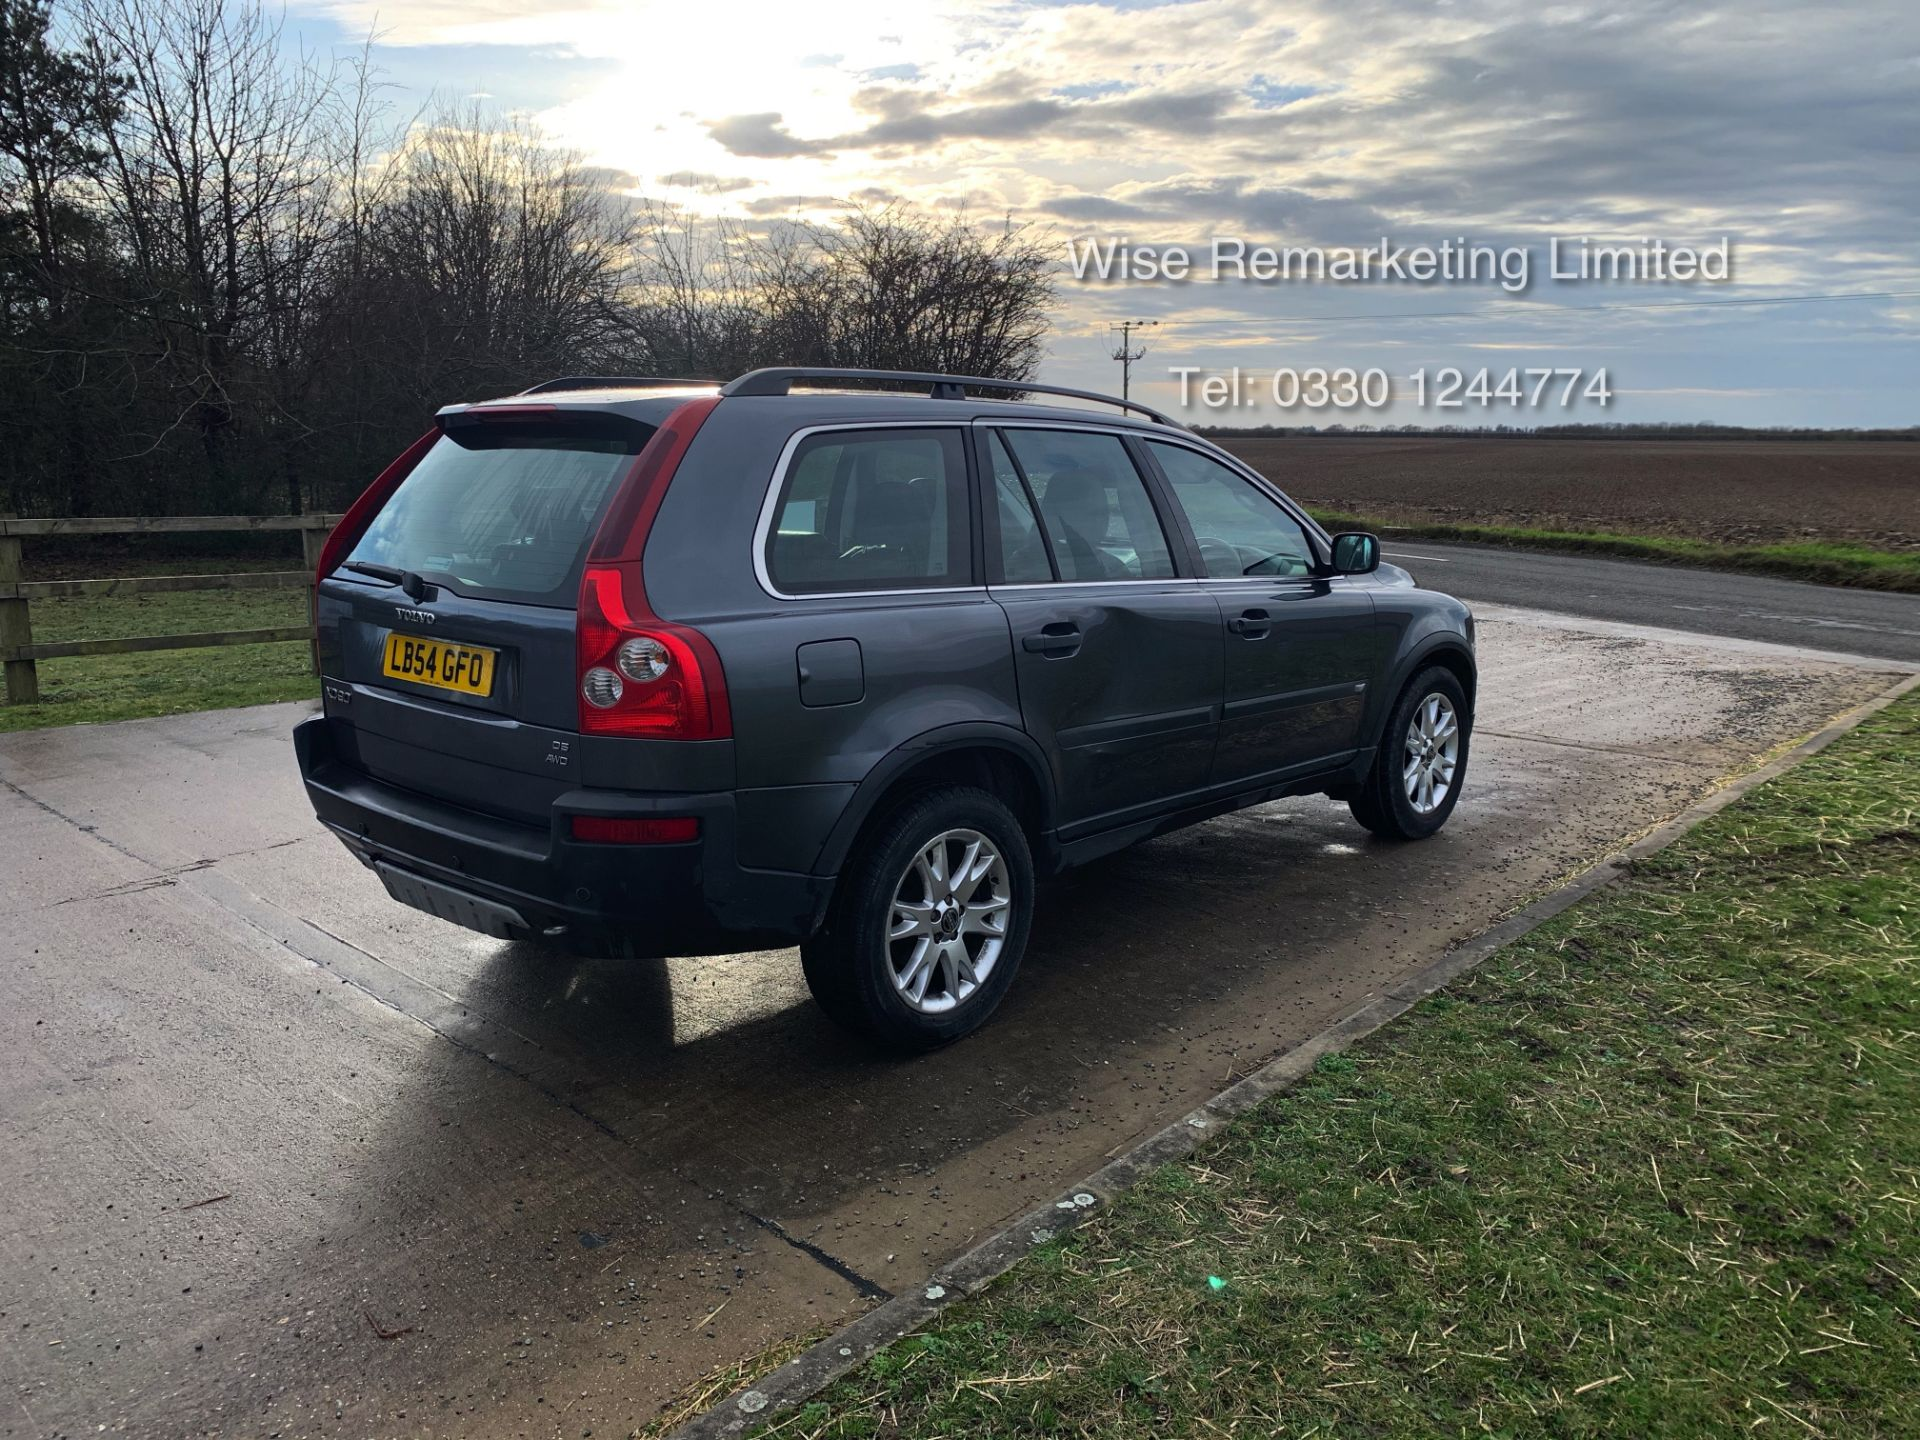 Lot 46 - Volvo XC90 D5 2.4 Special Equipment Auto - 2005 Model - 7 Seater - Full Leather -